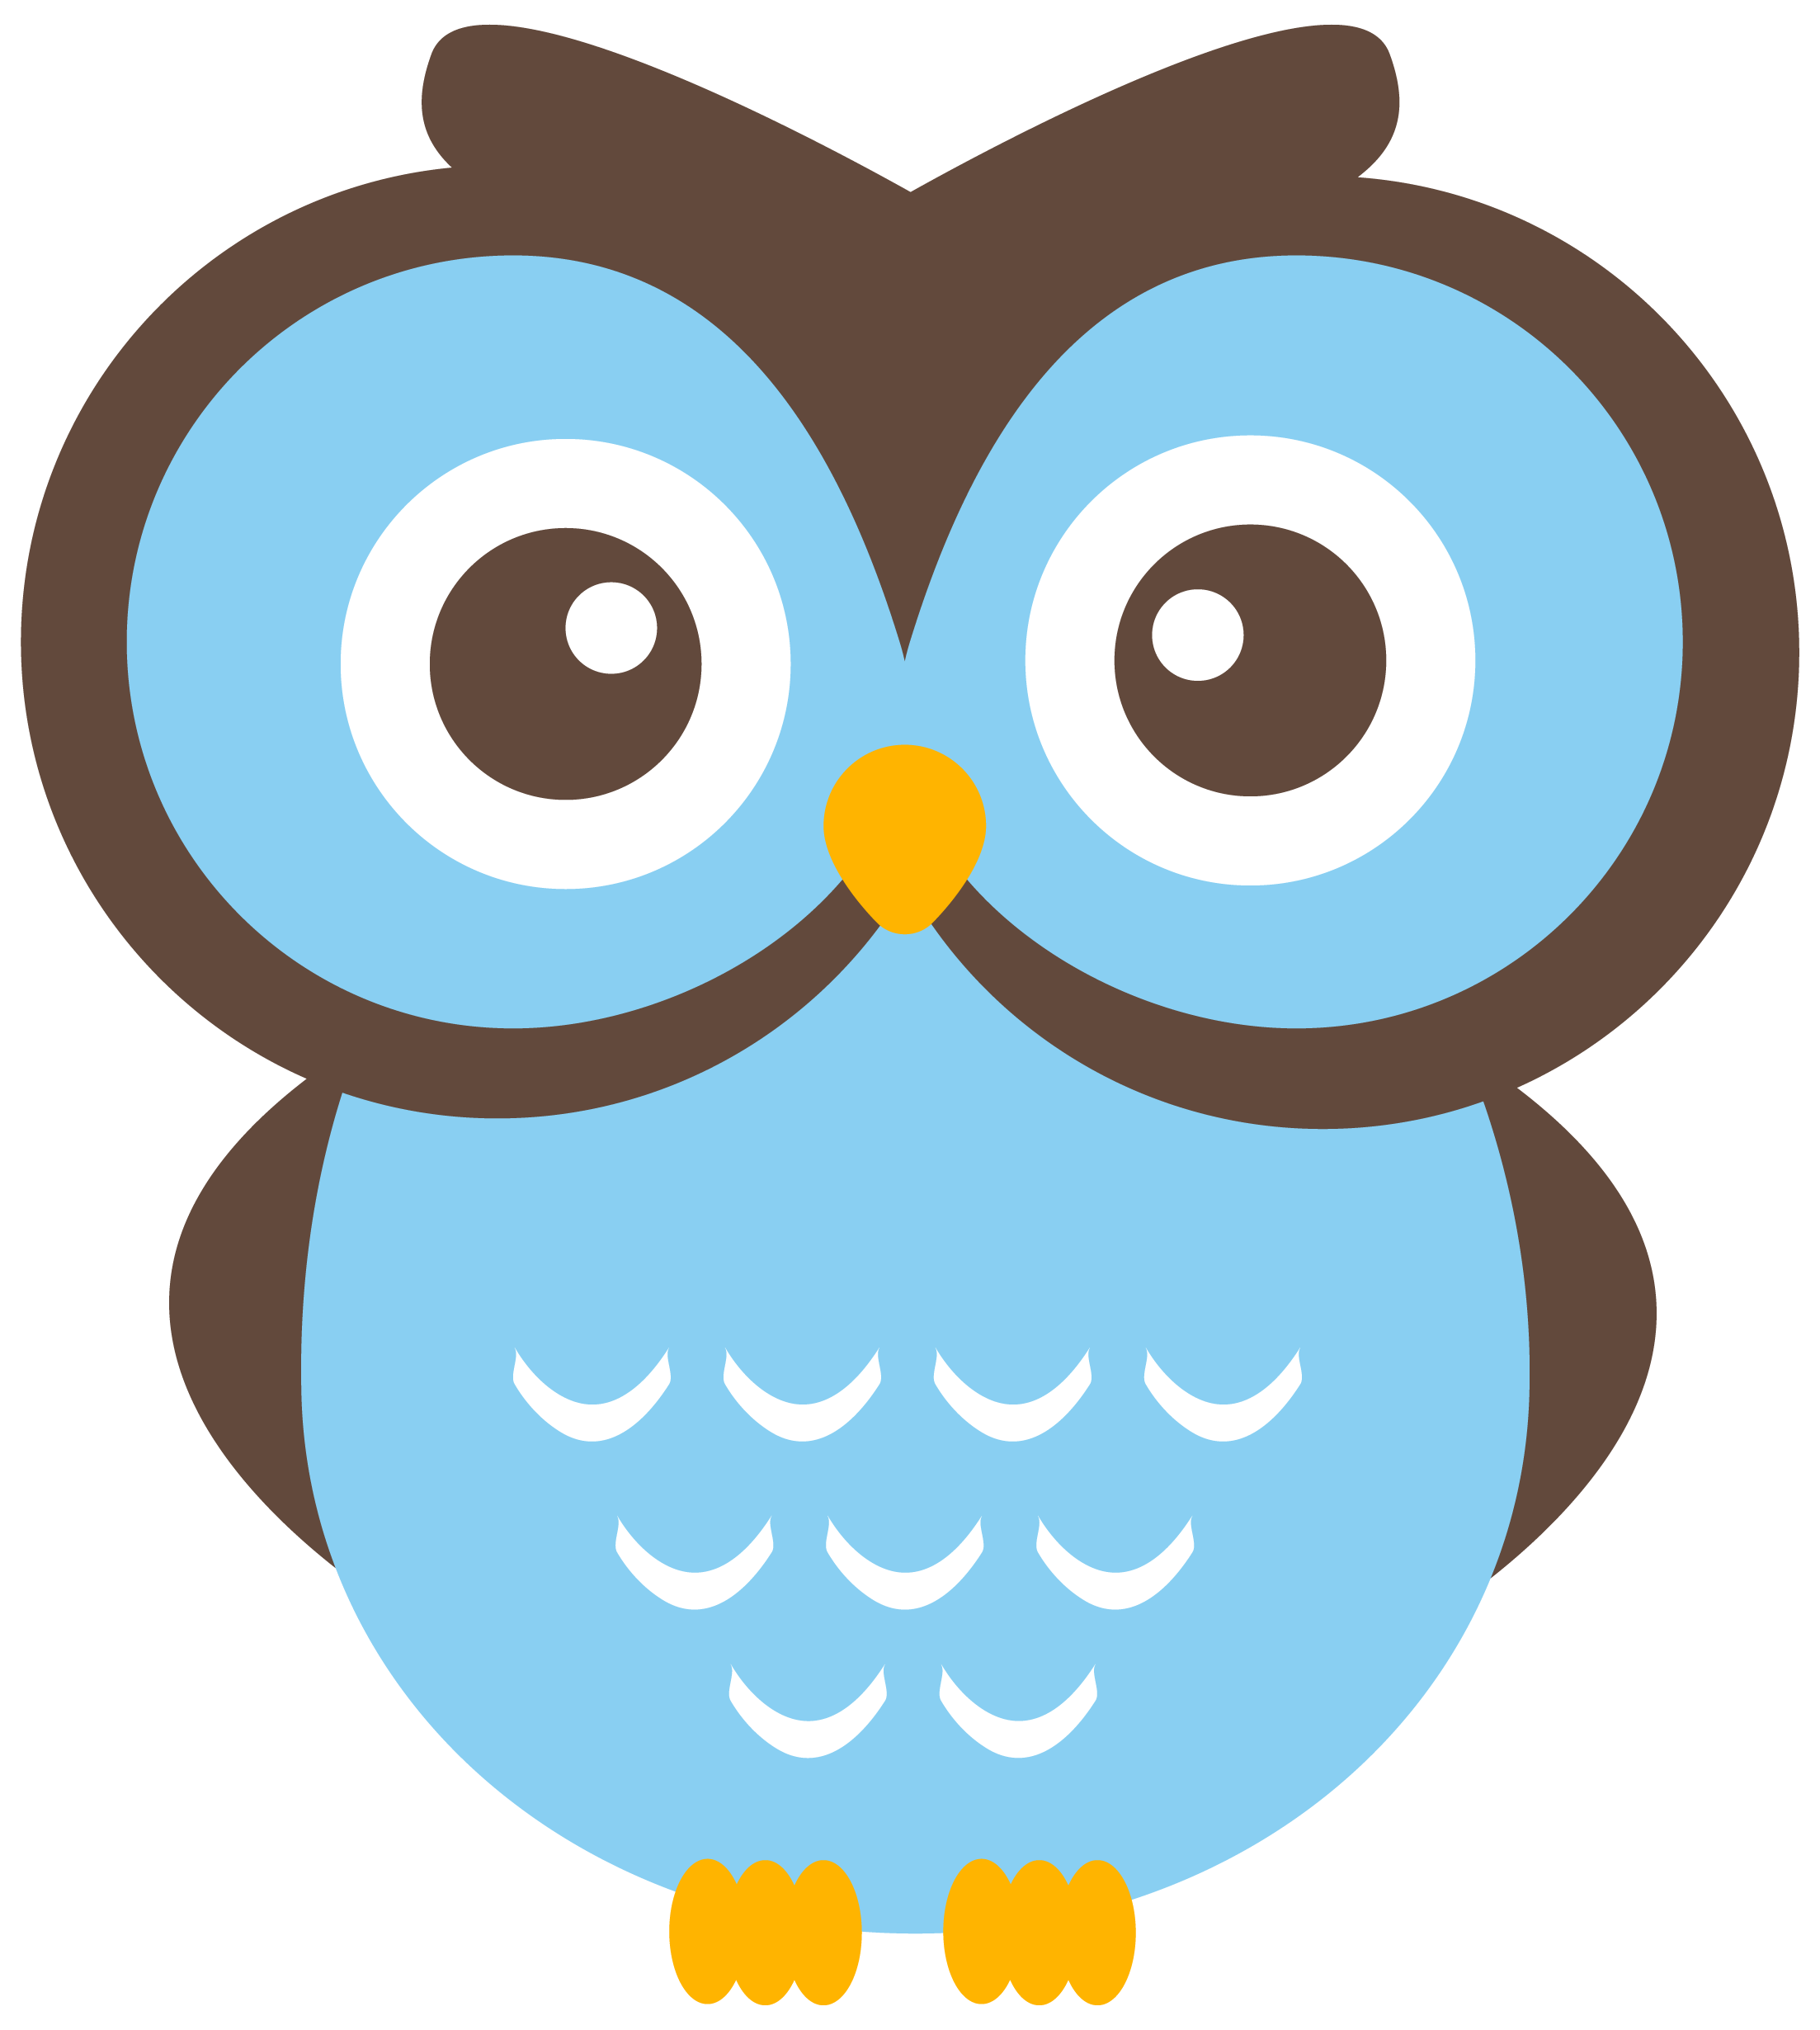 Owls on owl clip art owl and cartoon owls image #5 - PNG Eule Blau